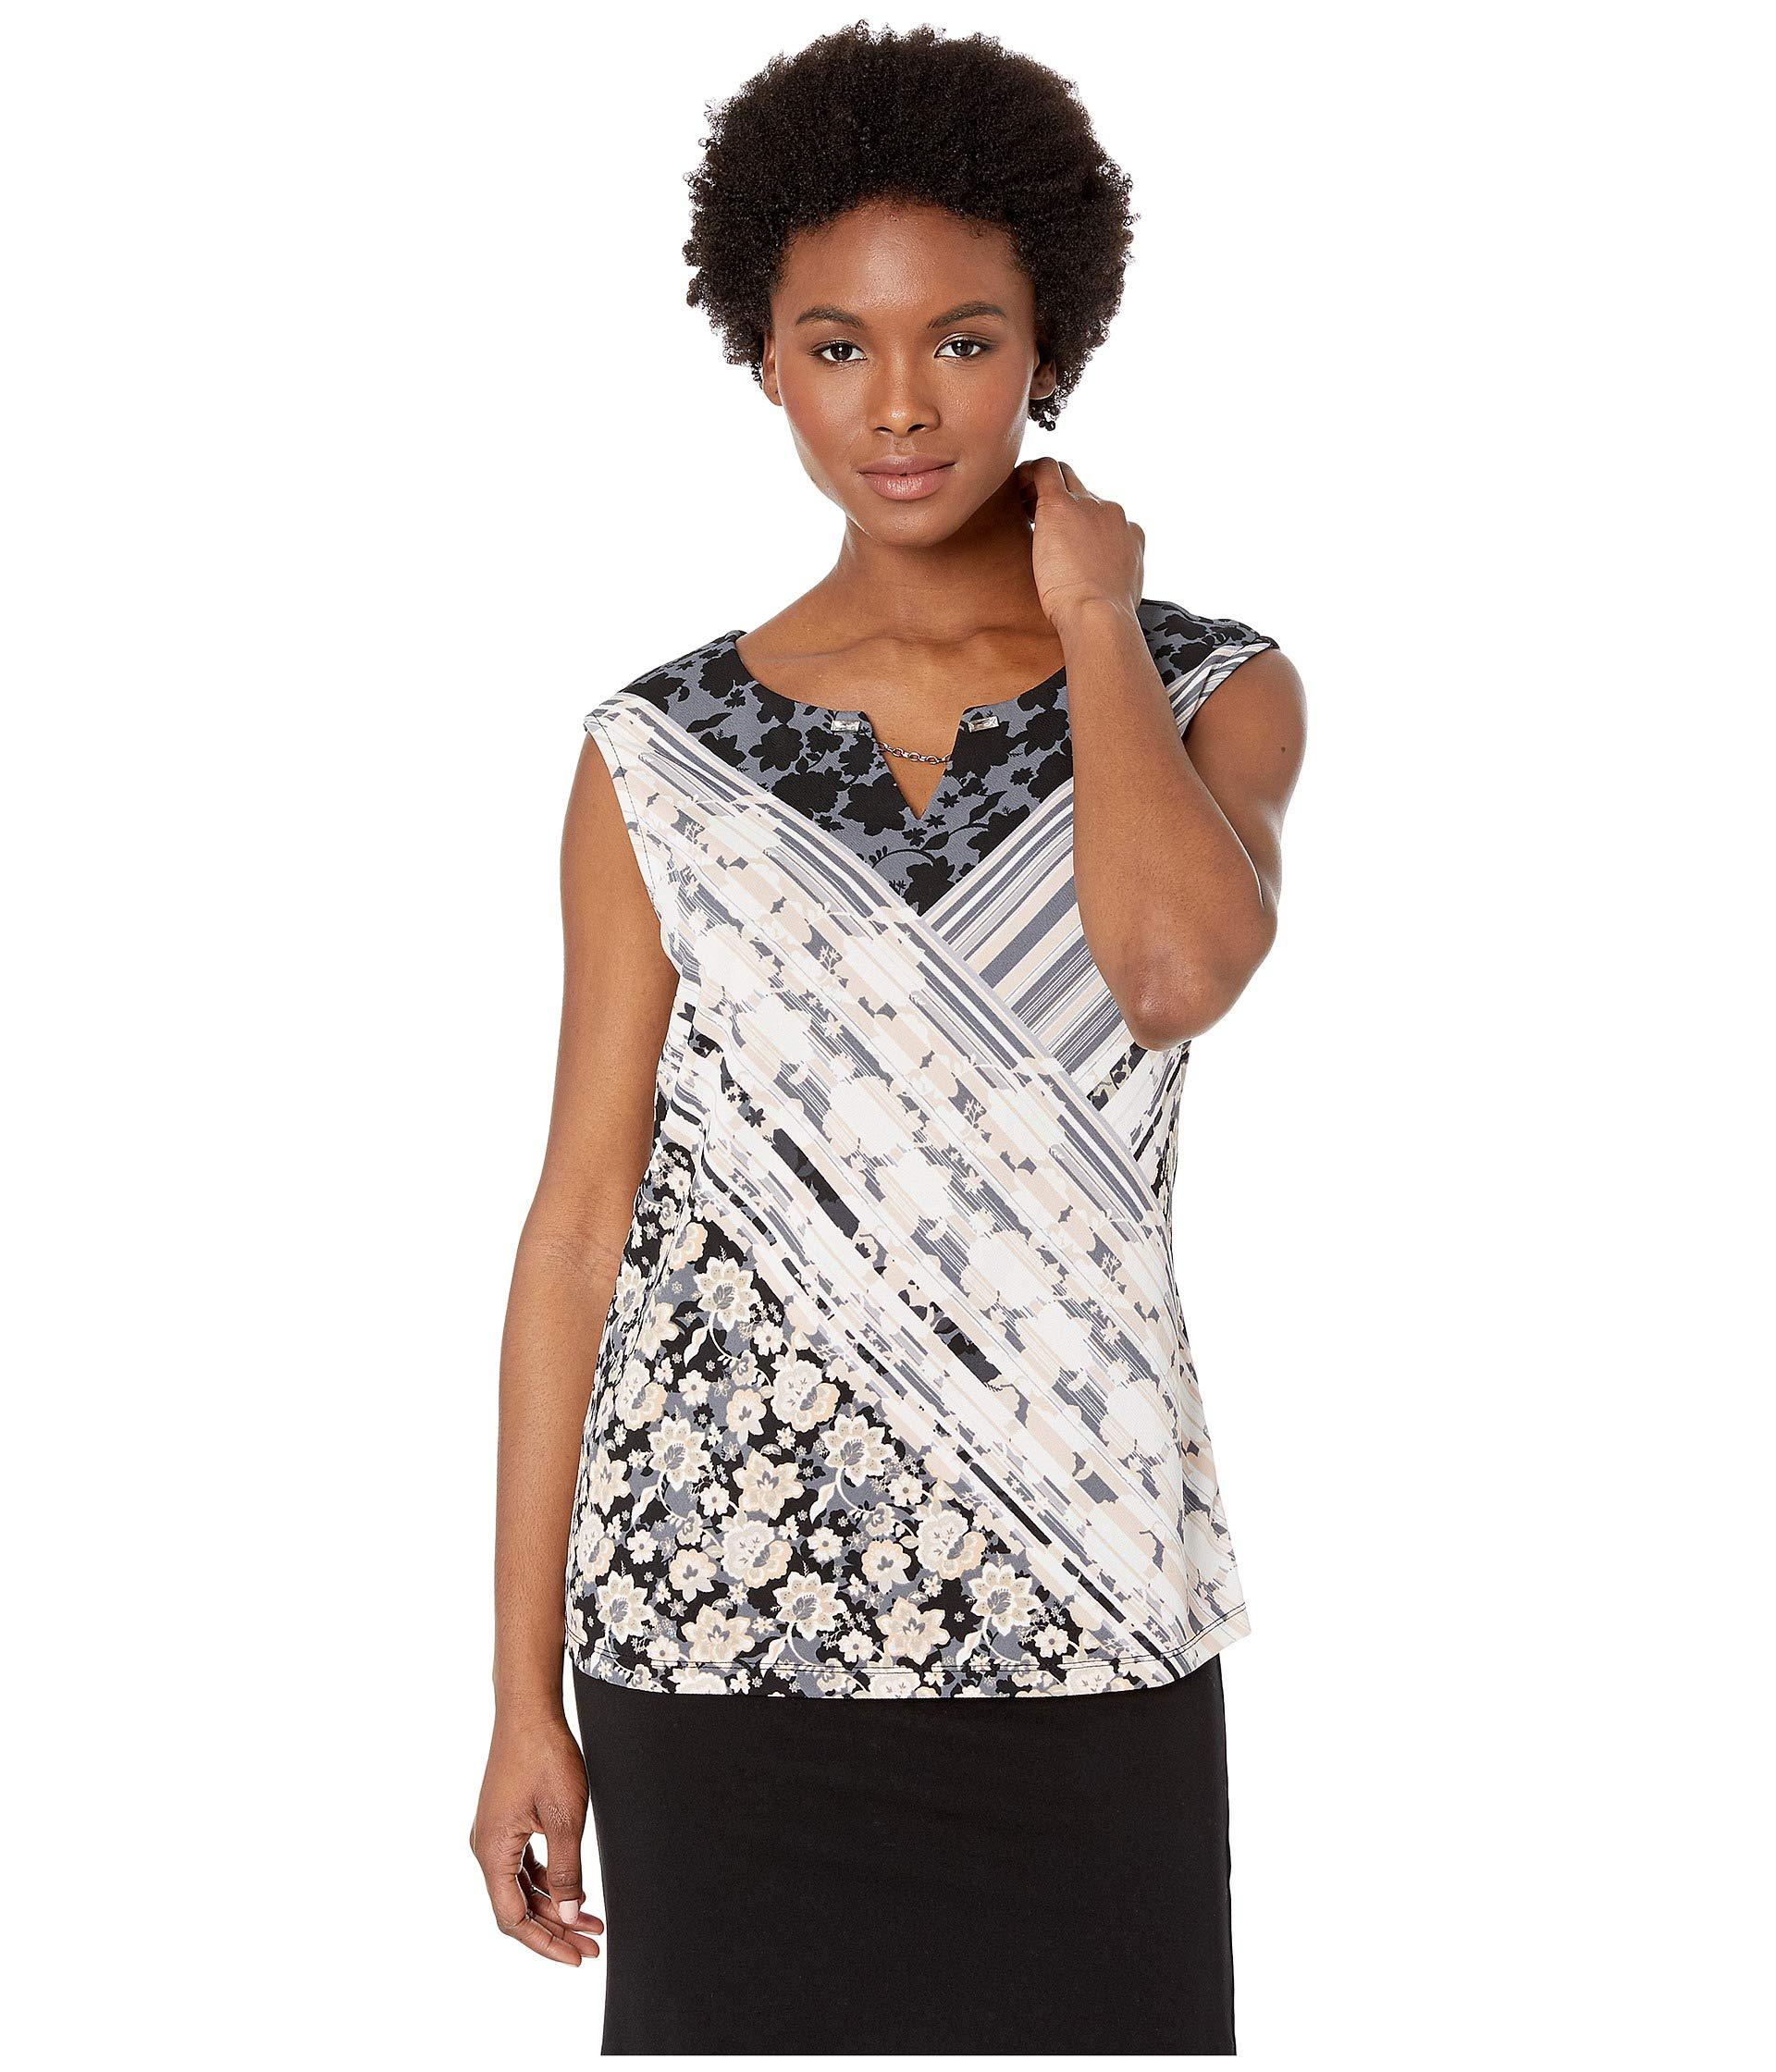 dc5a8cef71d85 Lyst - Calvin Klein Printed Sleeveless Top With Crystal And Chain ...